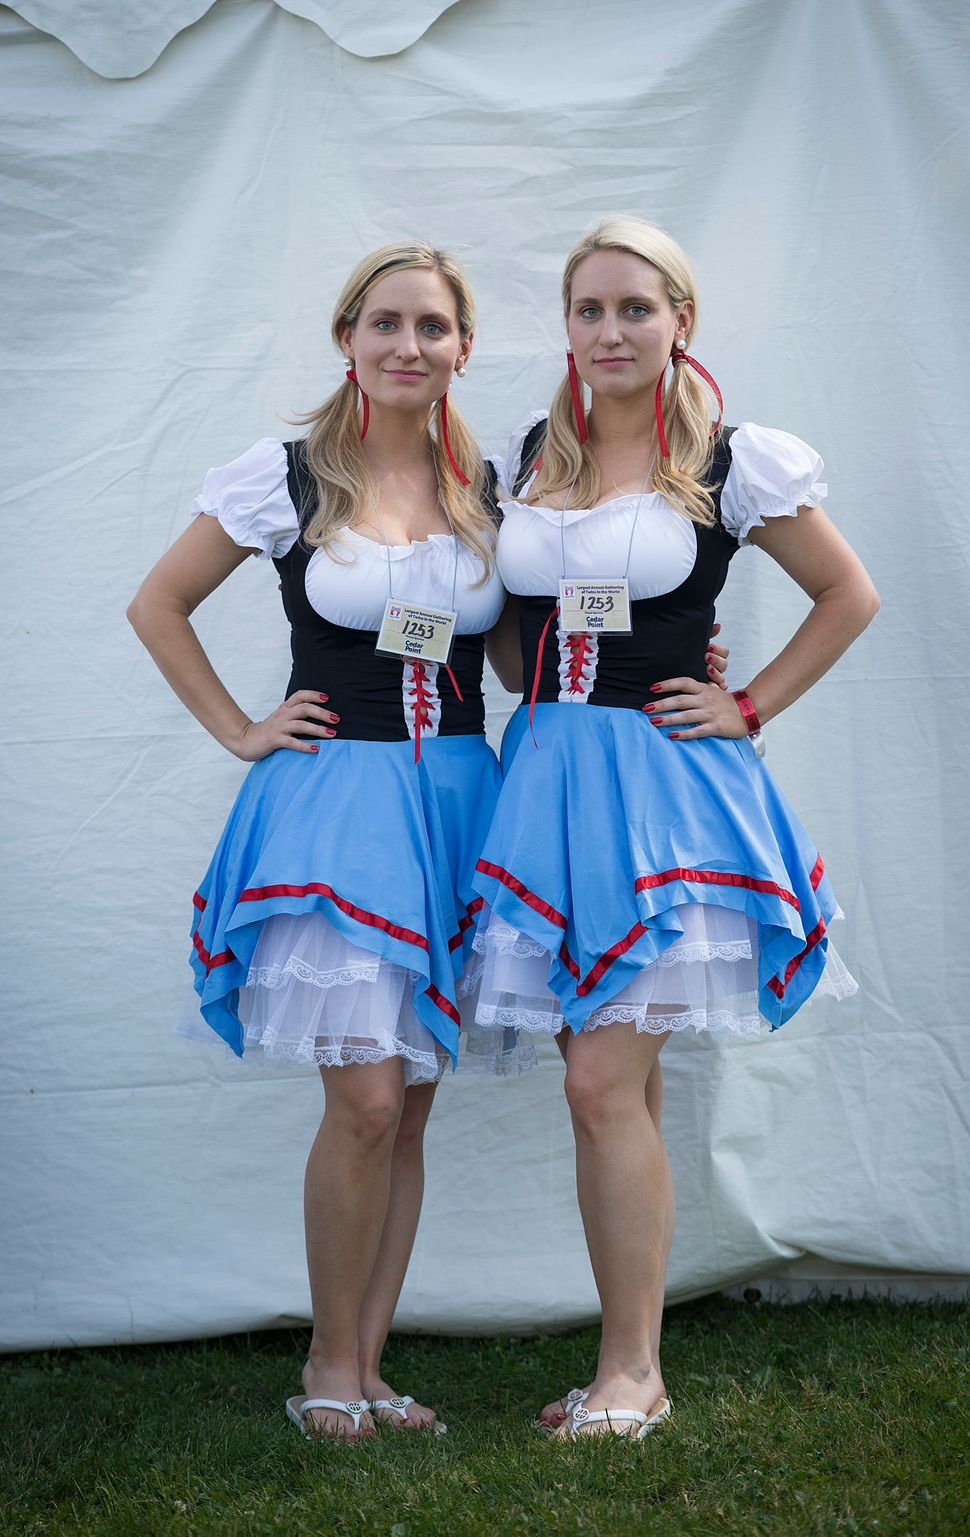 Briana(left) and Brittany Deane celebrate their German-Swiss heritage.